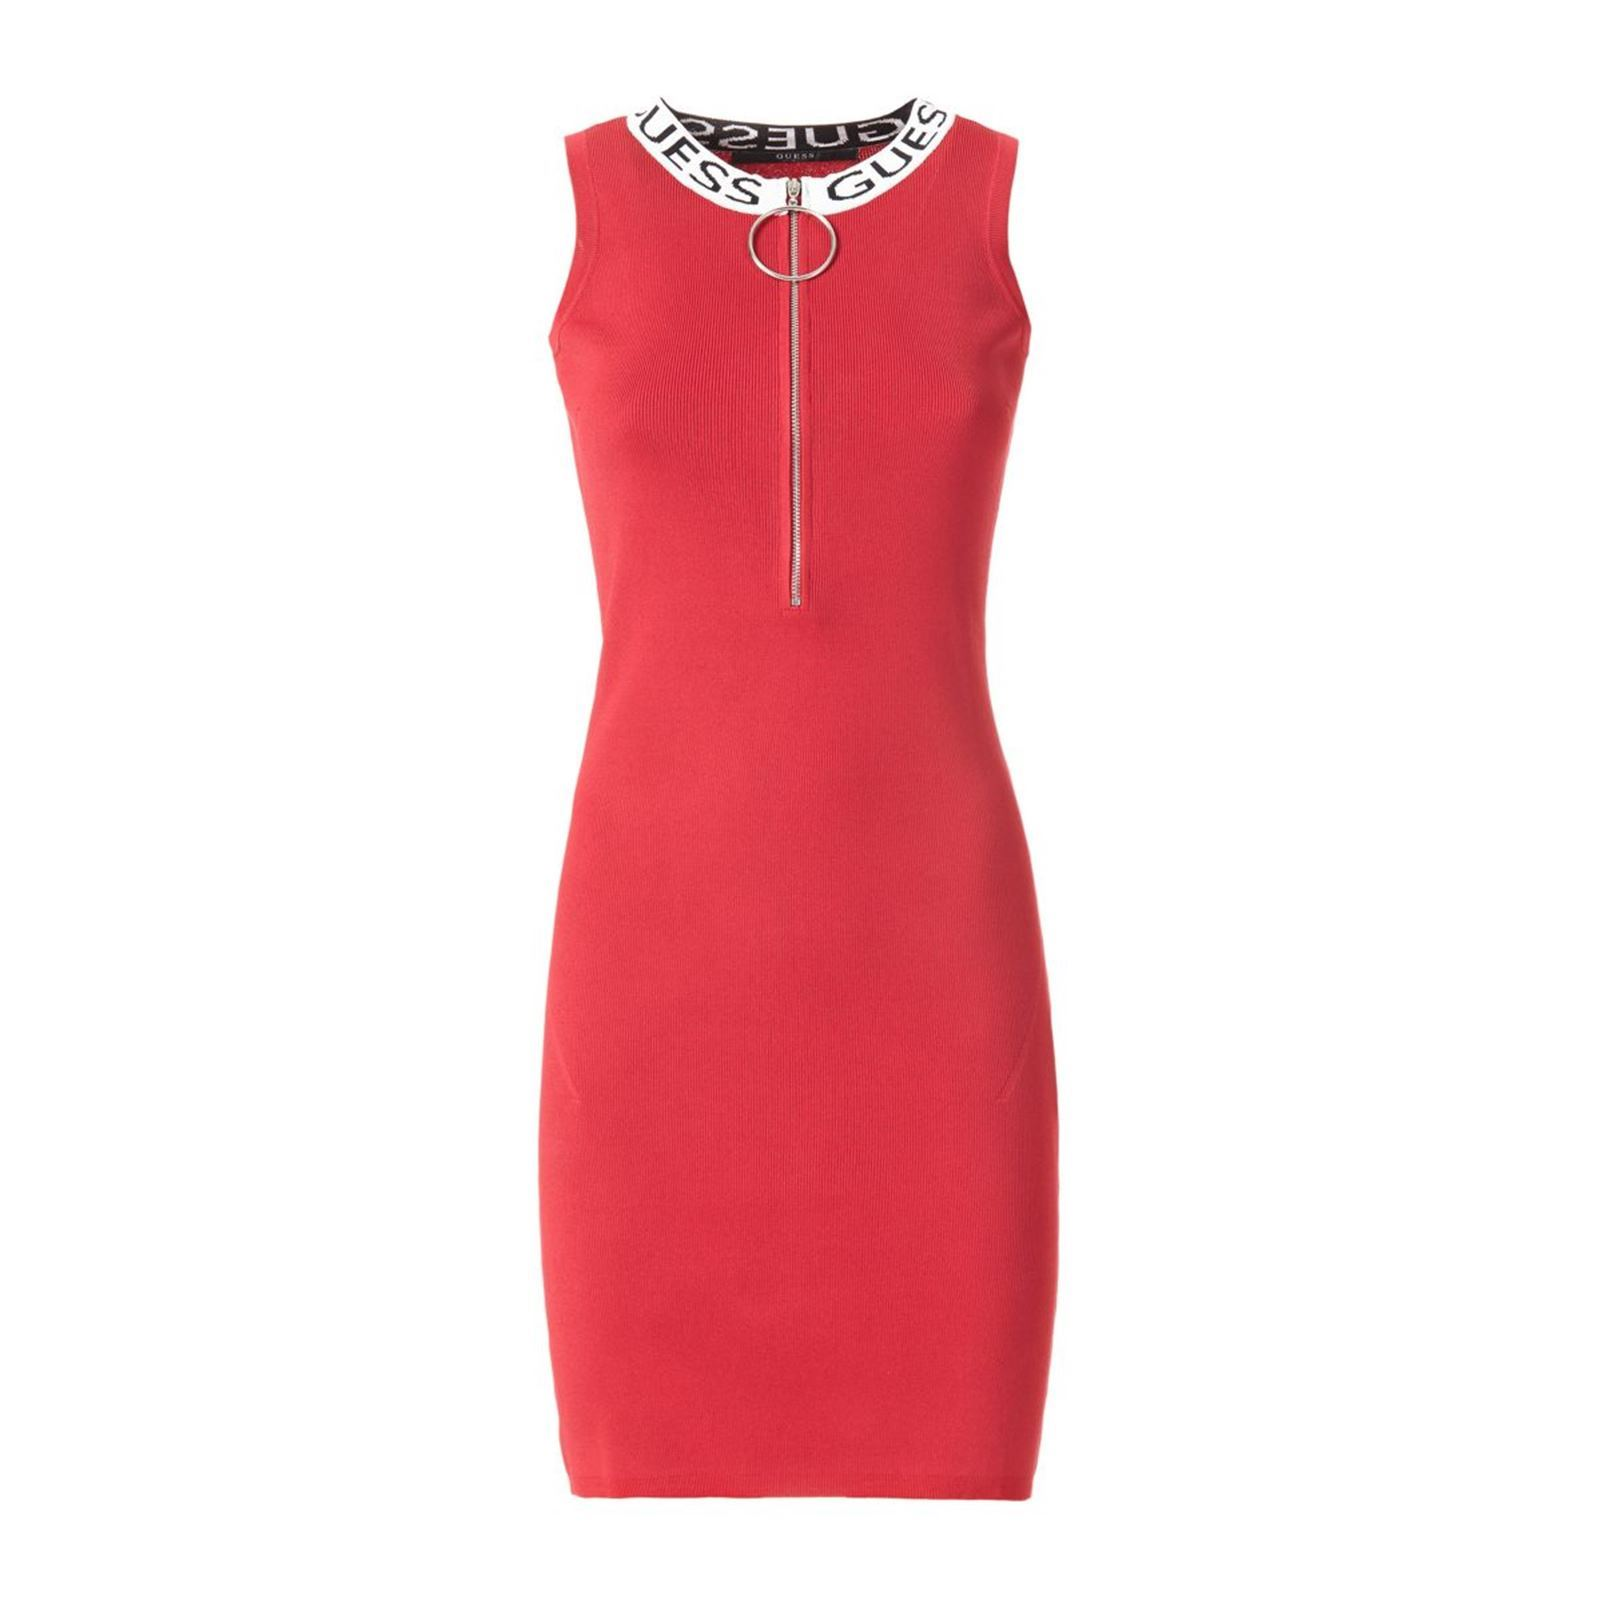 Guess Robe moulante - rouge   BrandAlley d47ae88be6fd